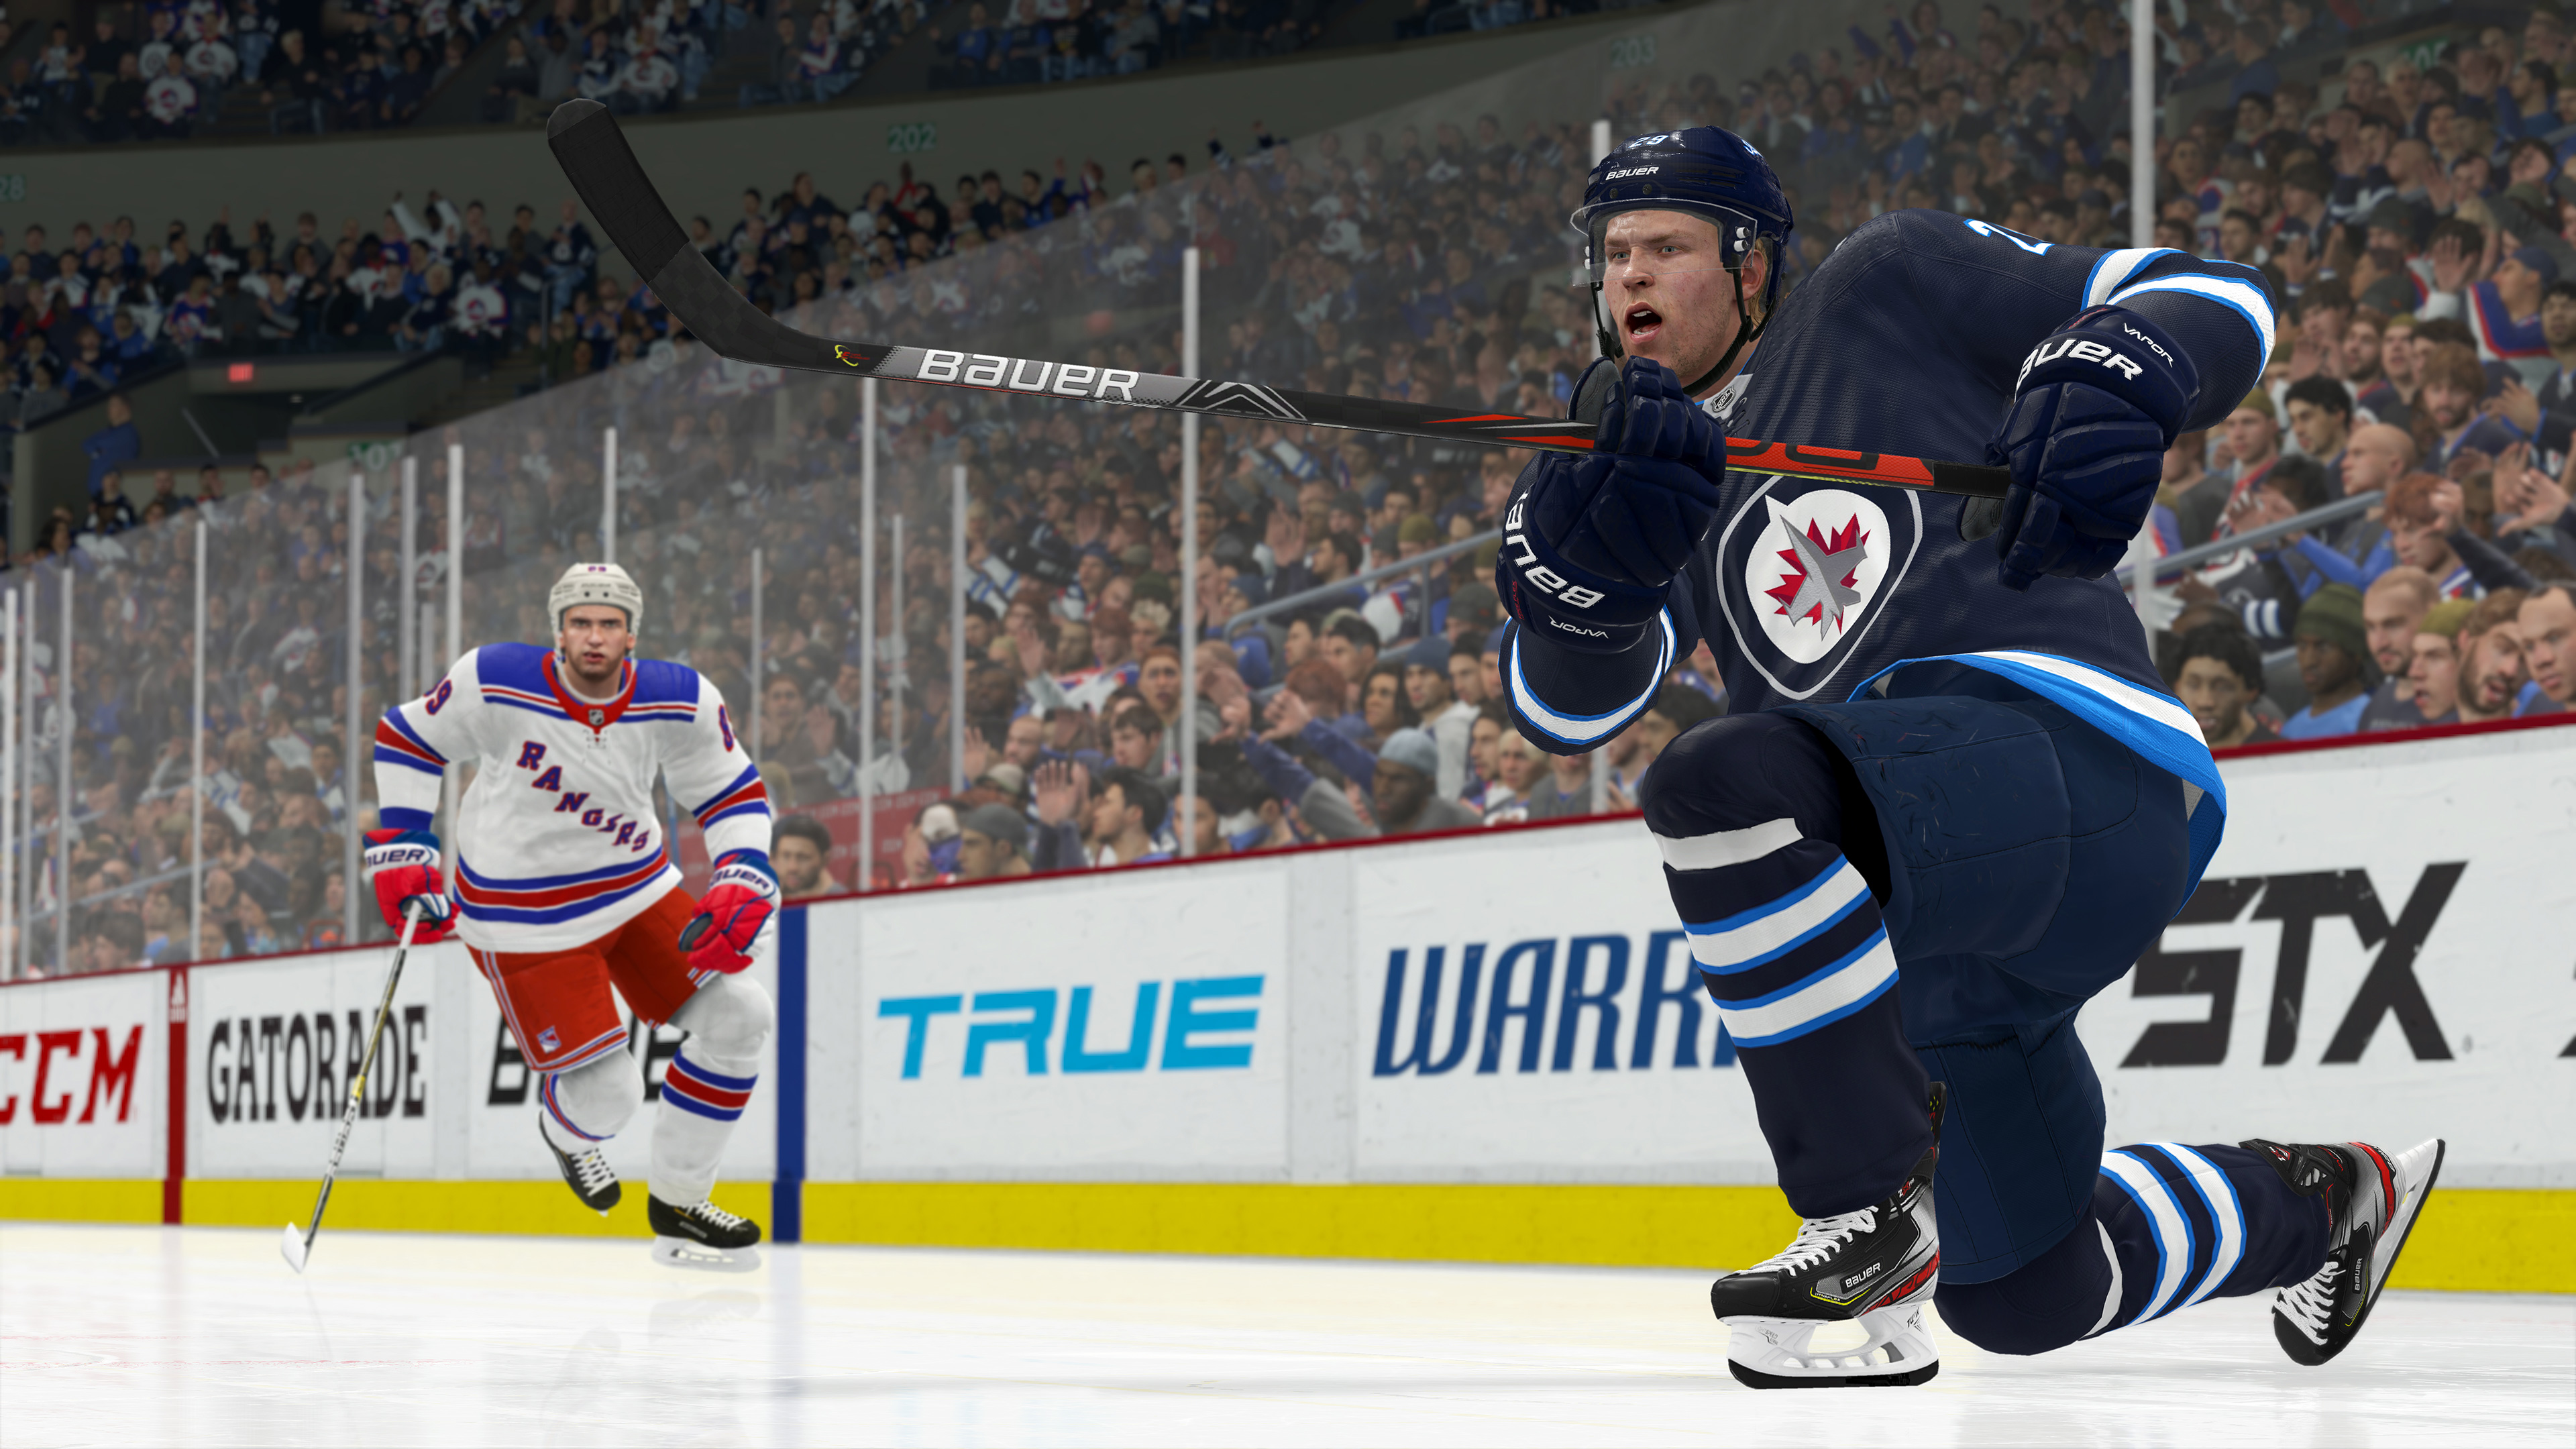 NHL 20 screenshot of the Winnipeg Jets' Patrik Laine on one knee, having just taken a shot, with the New York Rangers' Pavel Buchnevich in the background